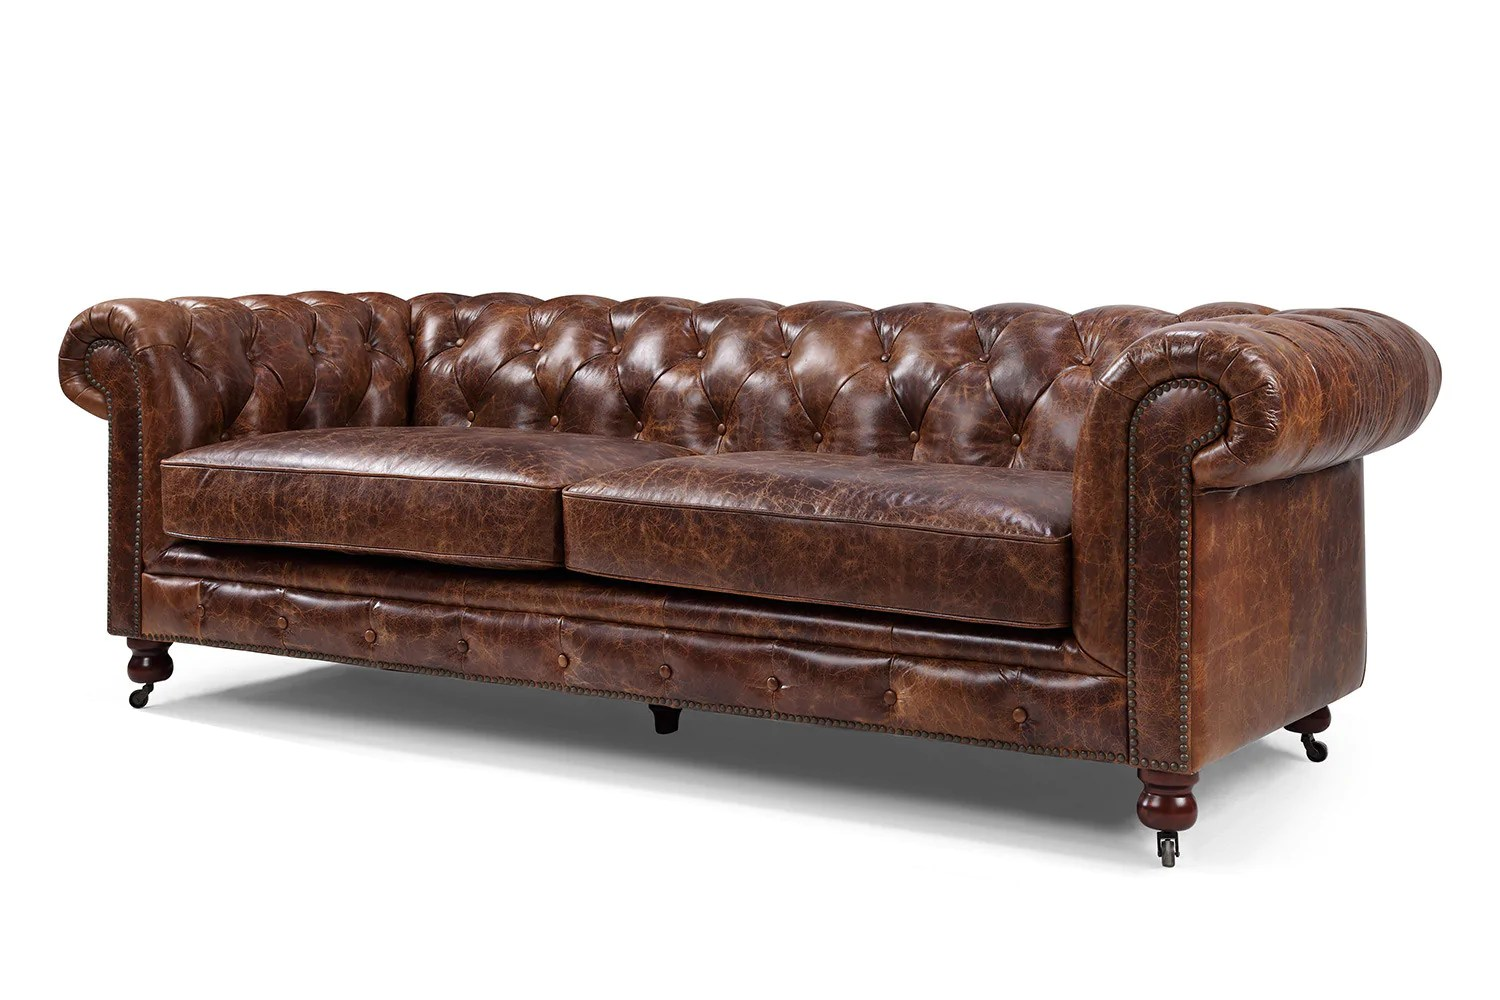 vine brown leather tufted sofa levin sofas the kensington chesterfield rose and moore